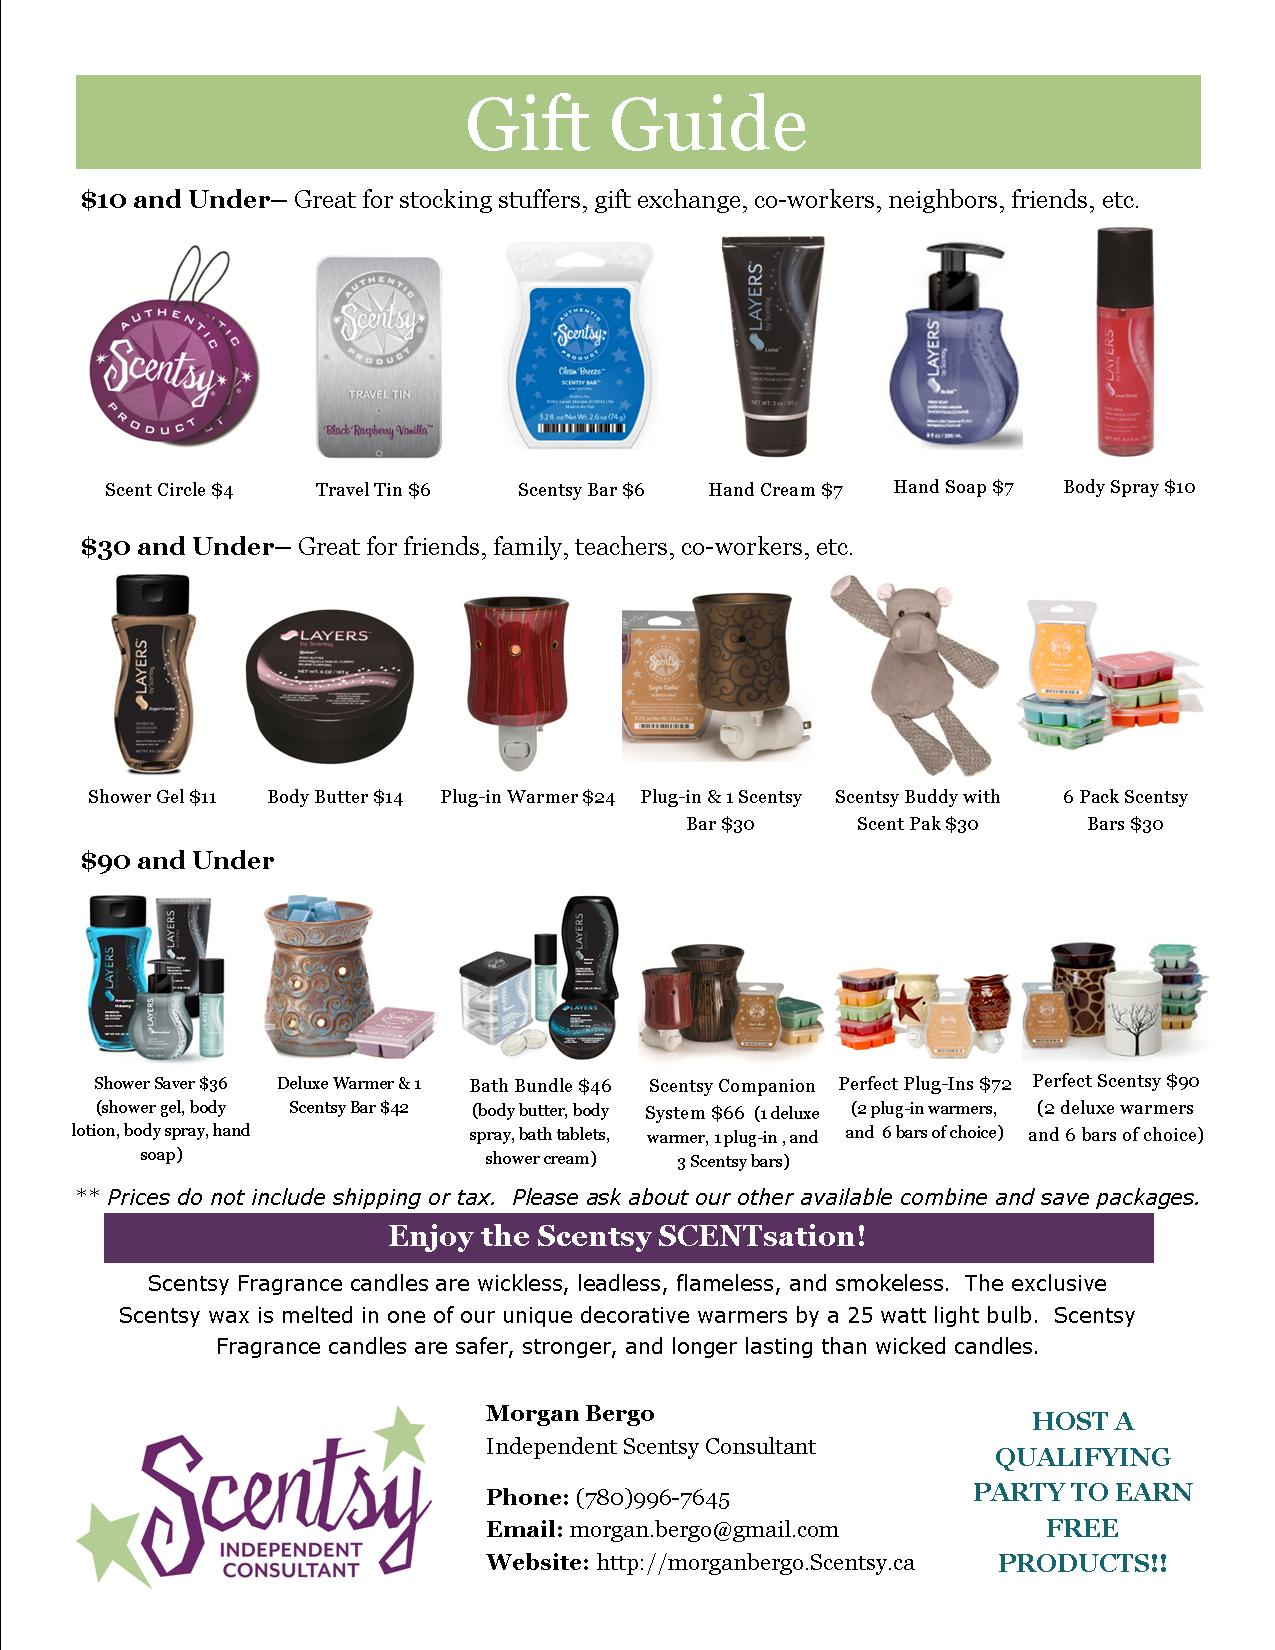 Gift Ideas | Everyday Scentsations